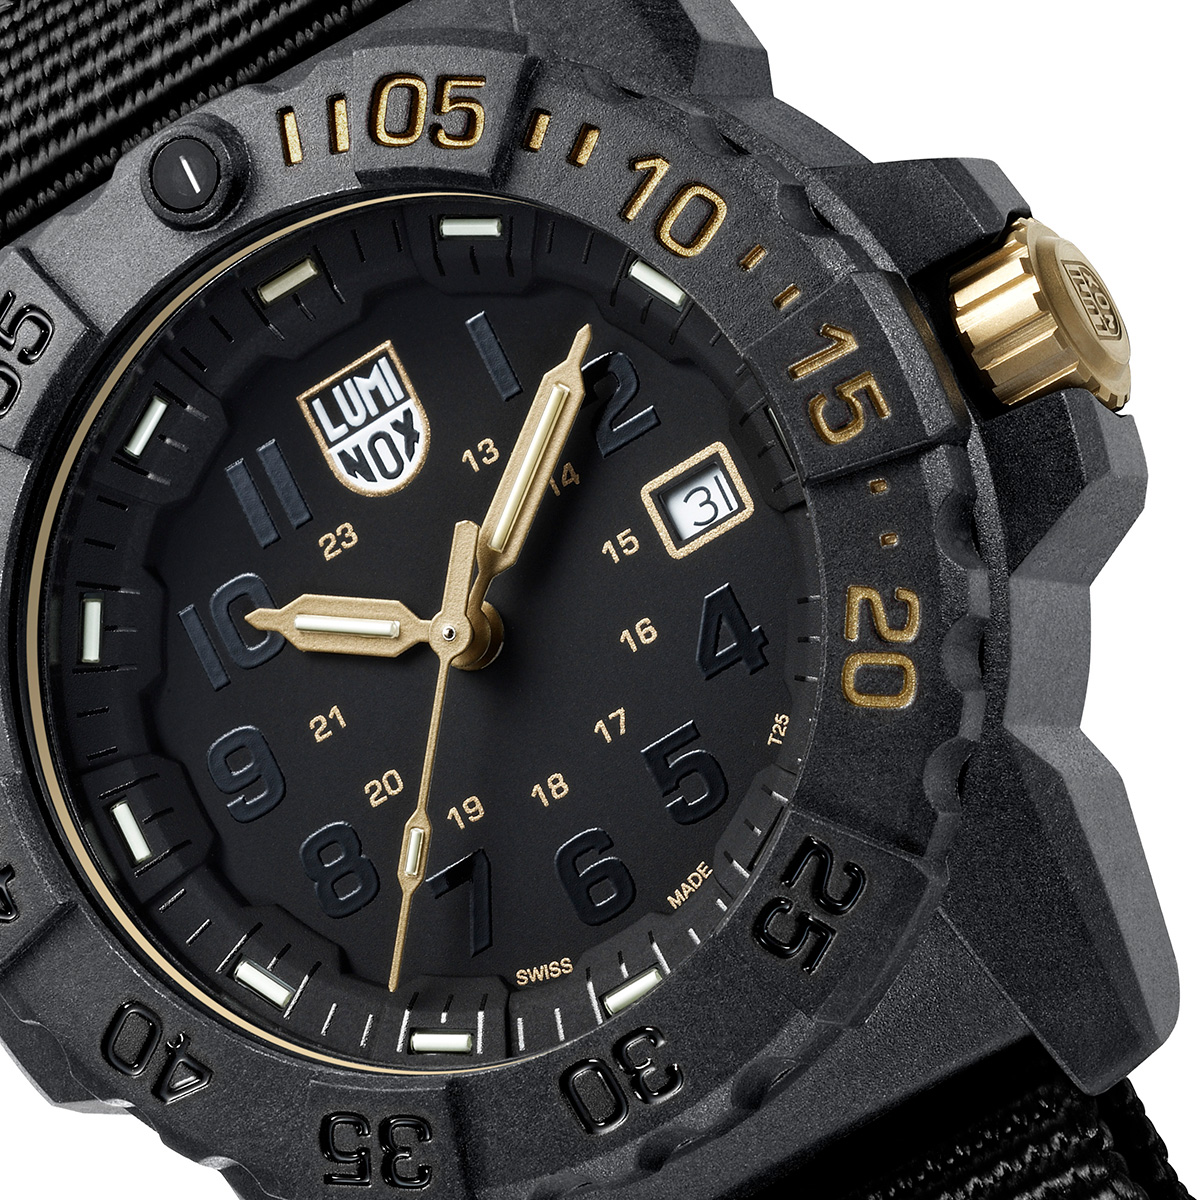 https://luminox.jp/watch-collection/sea/navy-seal-3500-series-ref-3501-gold-set/